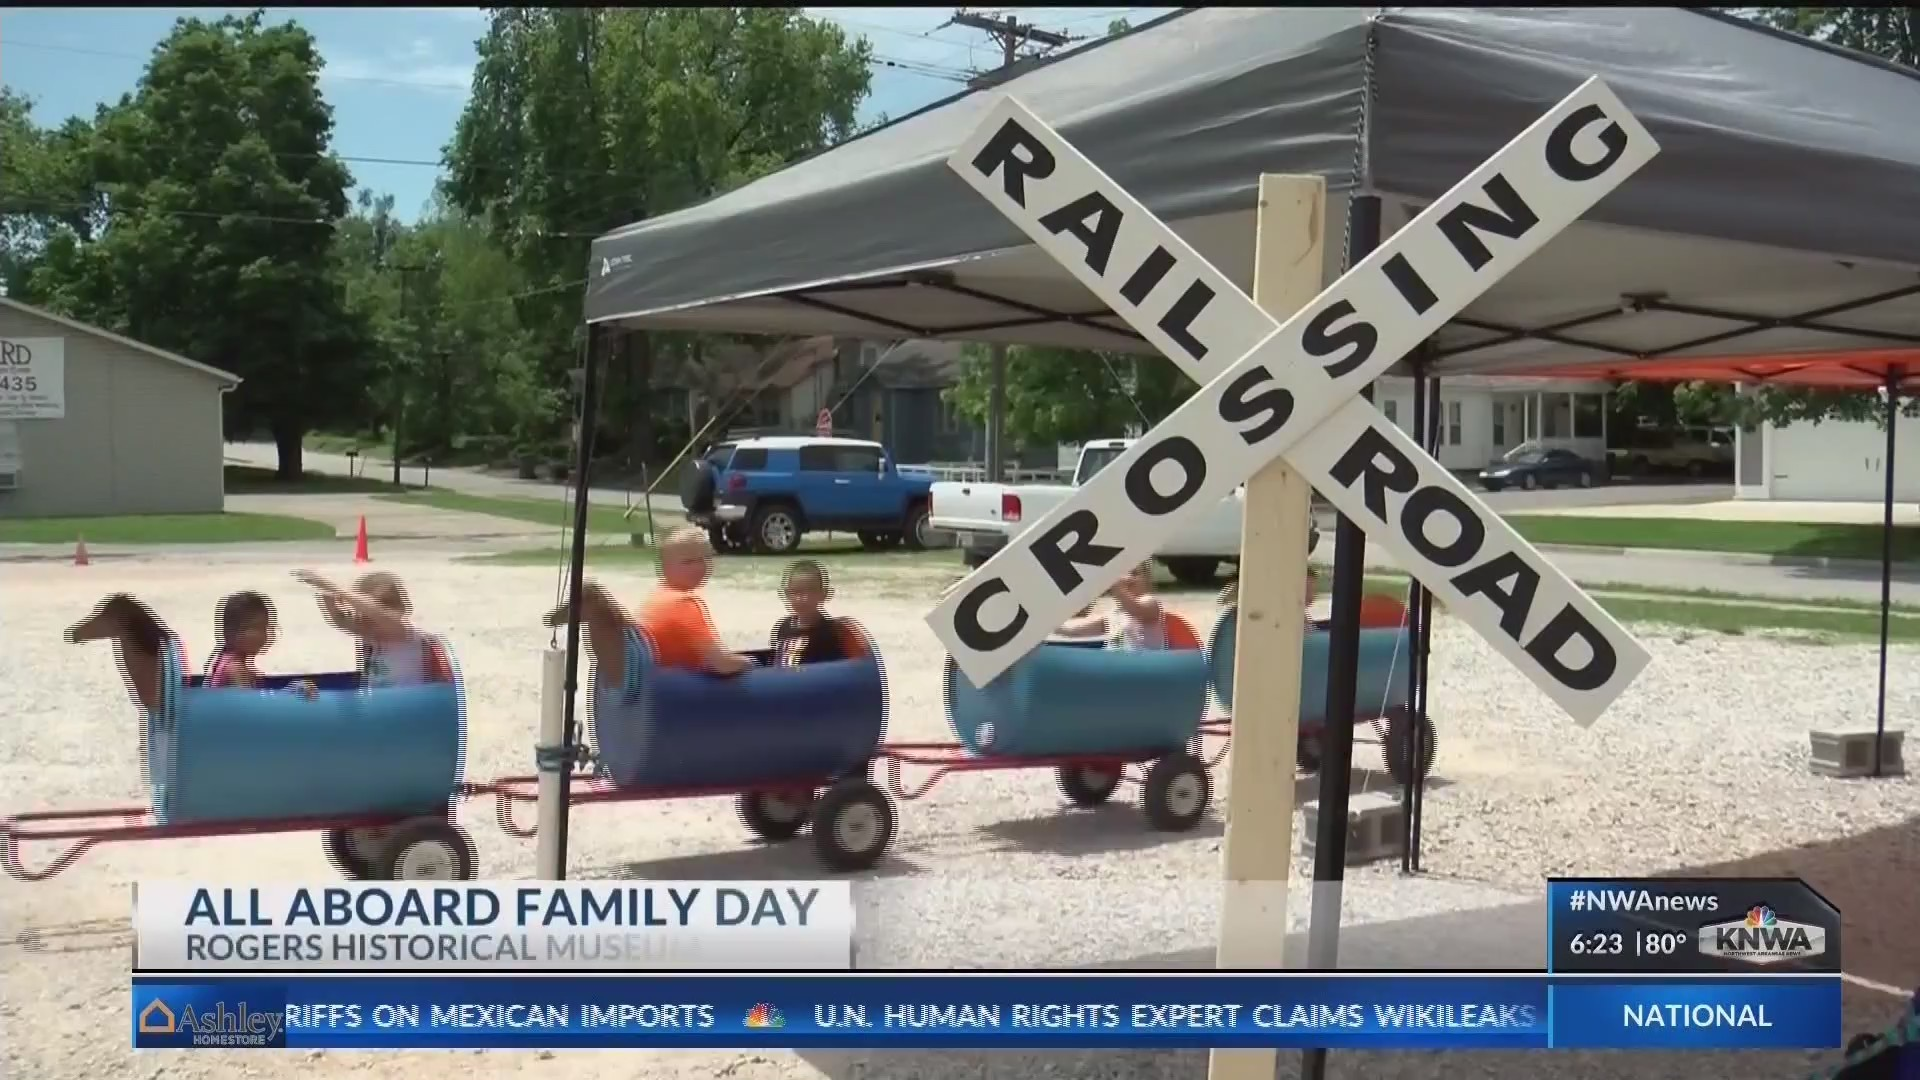 'All aboard!': Rogers Historical Society hosts family fun day (KNWA)